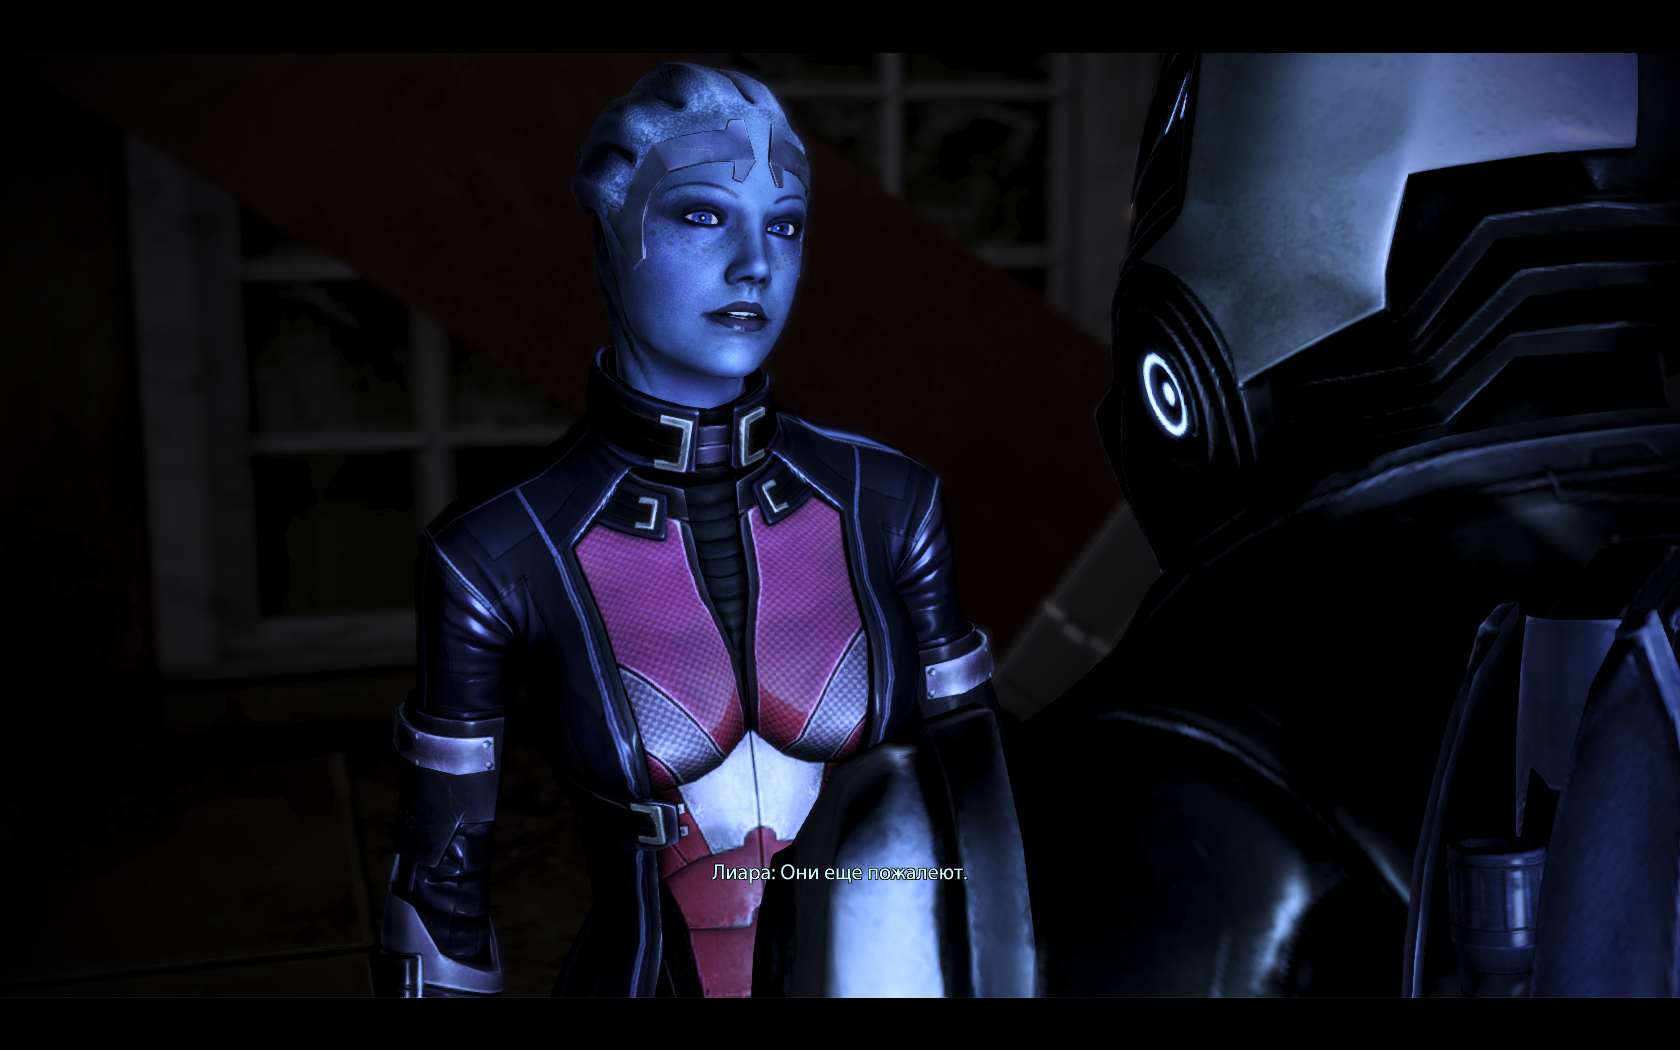 Mass effect 3 liara nackt pornos streaming